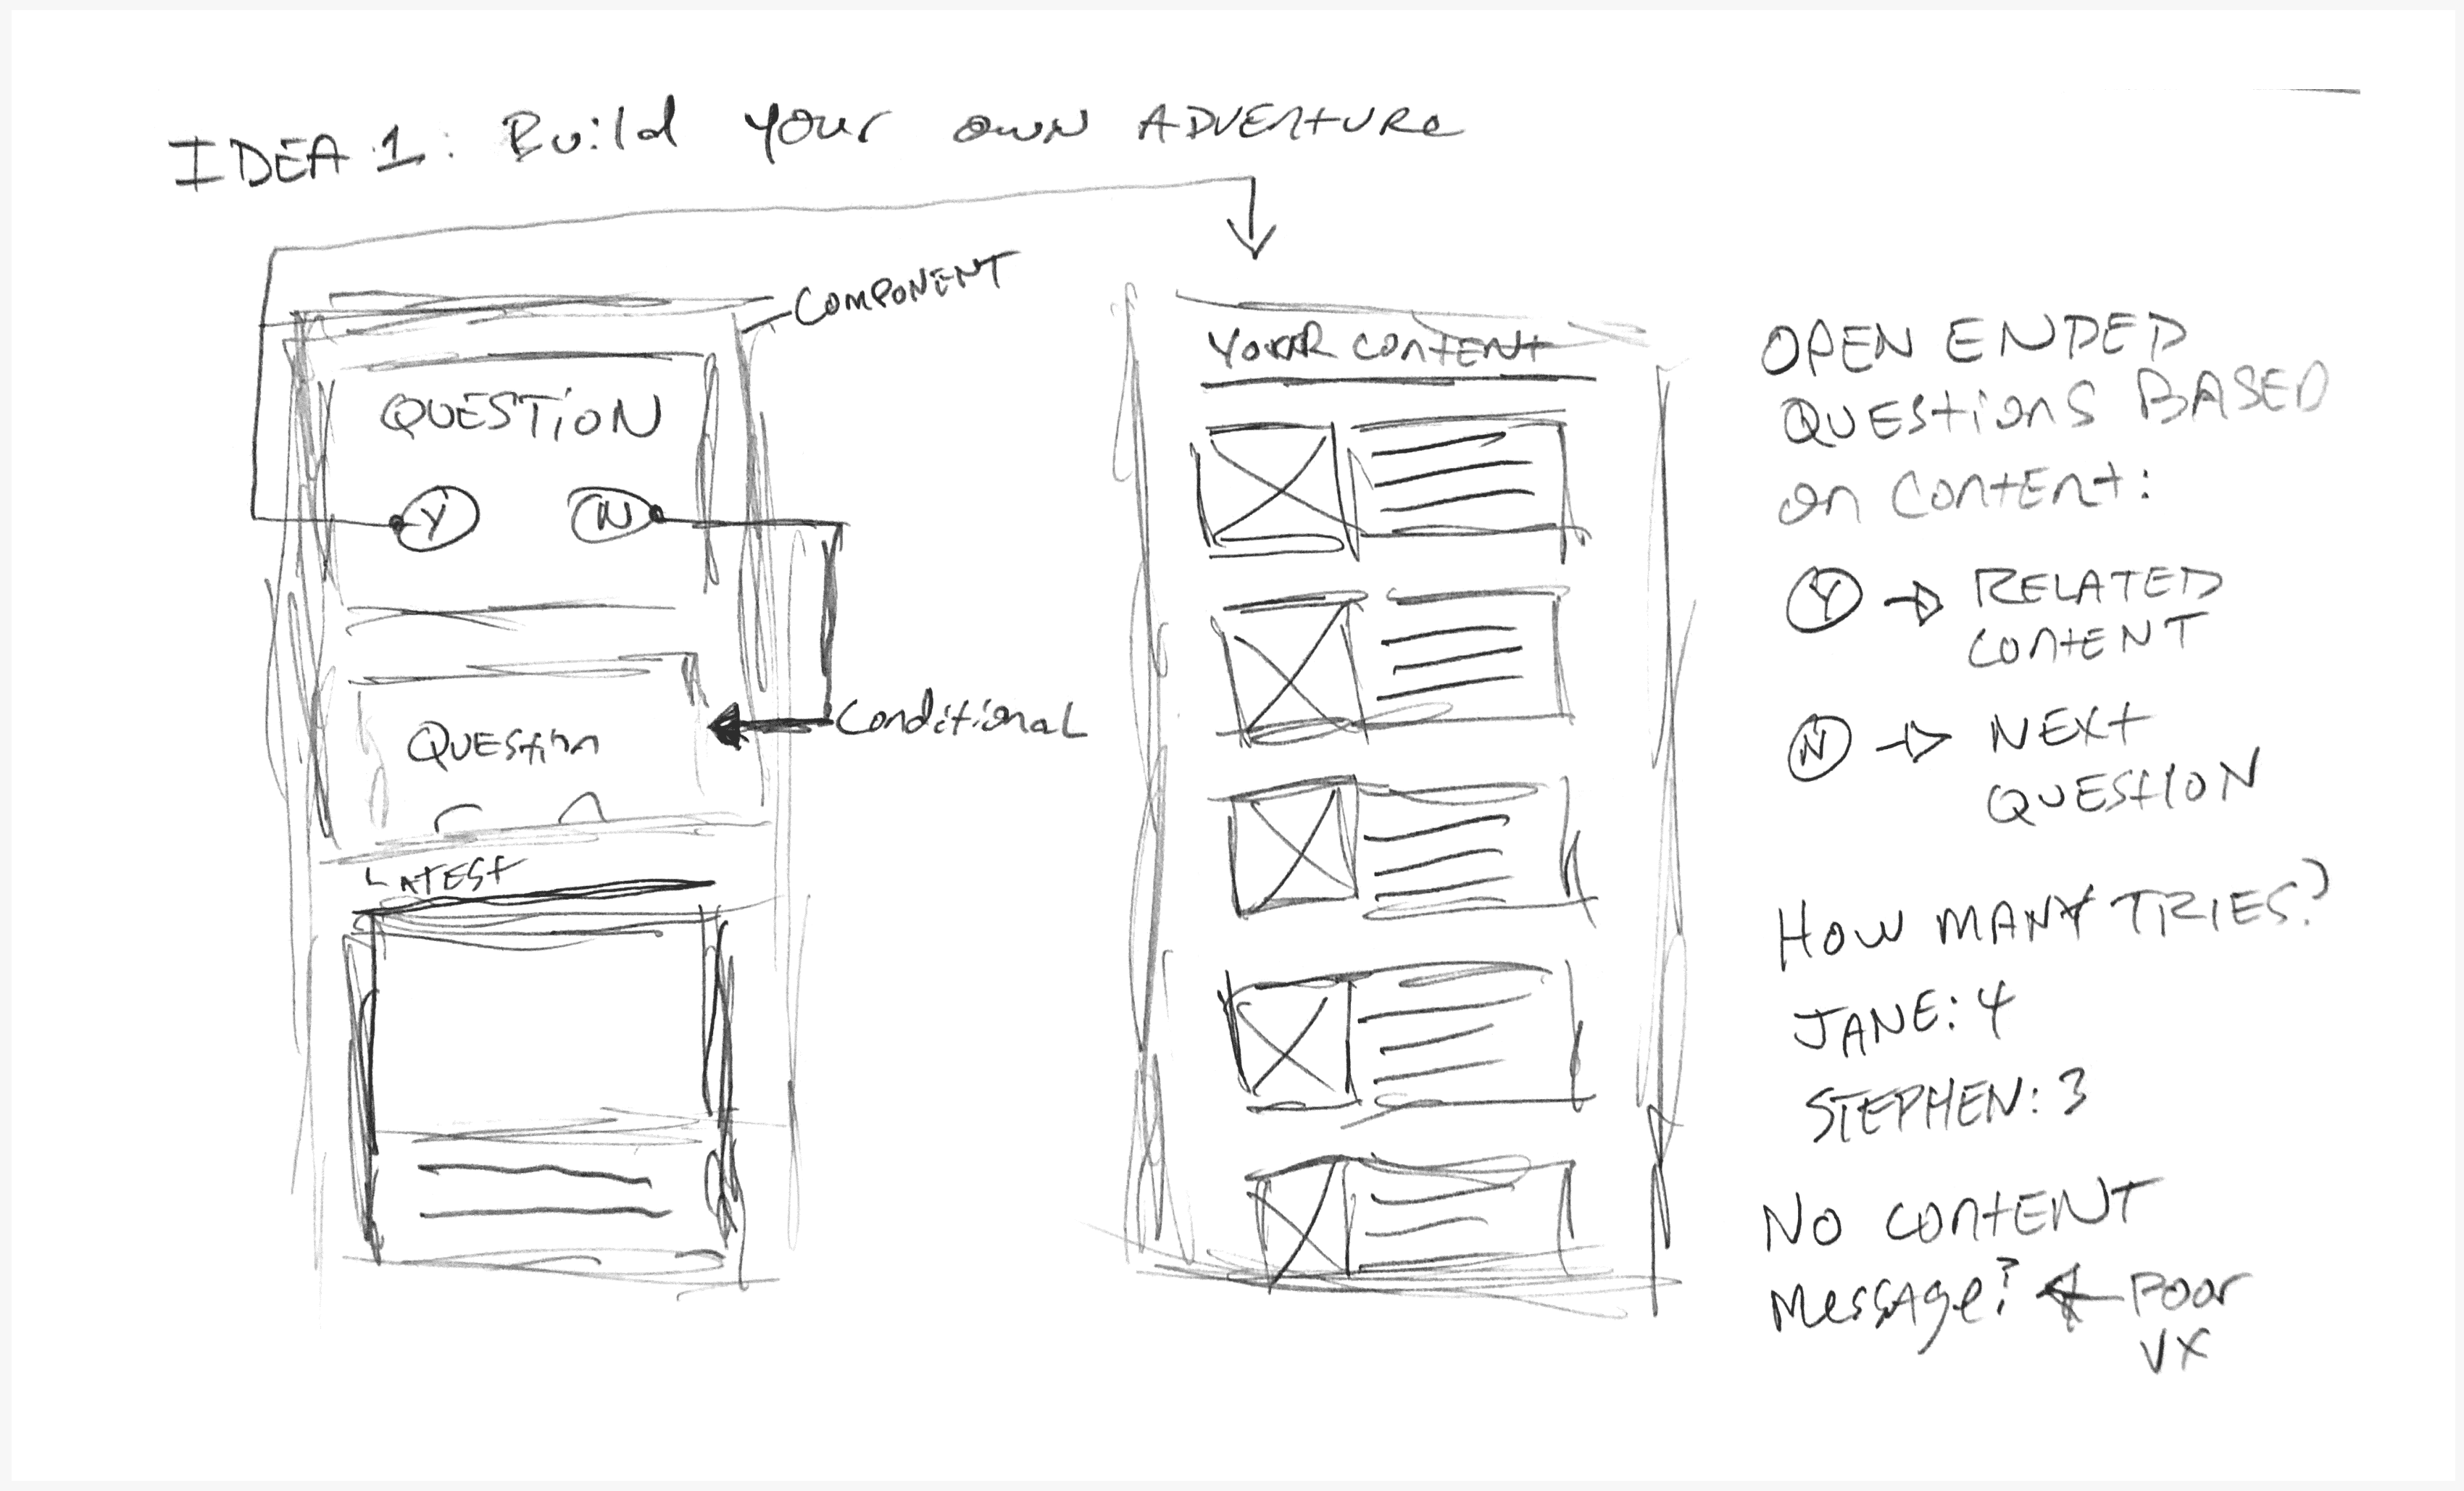 A sketch for a custom content experience with yes no questions